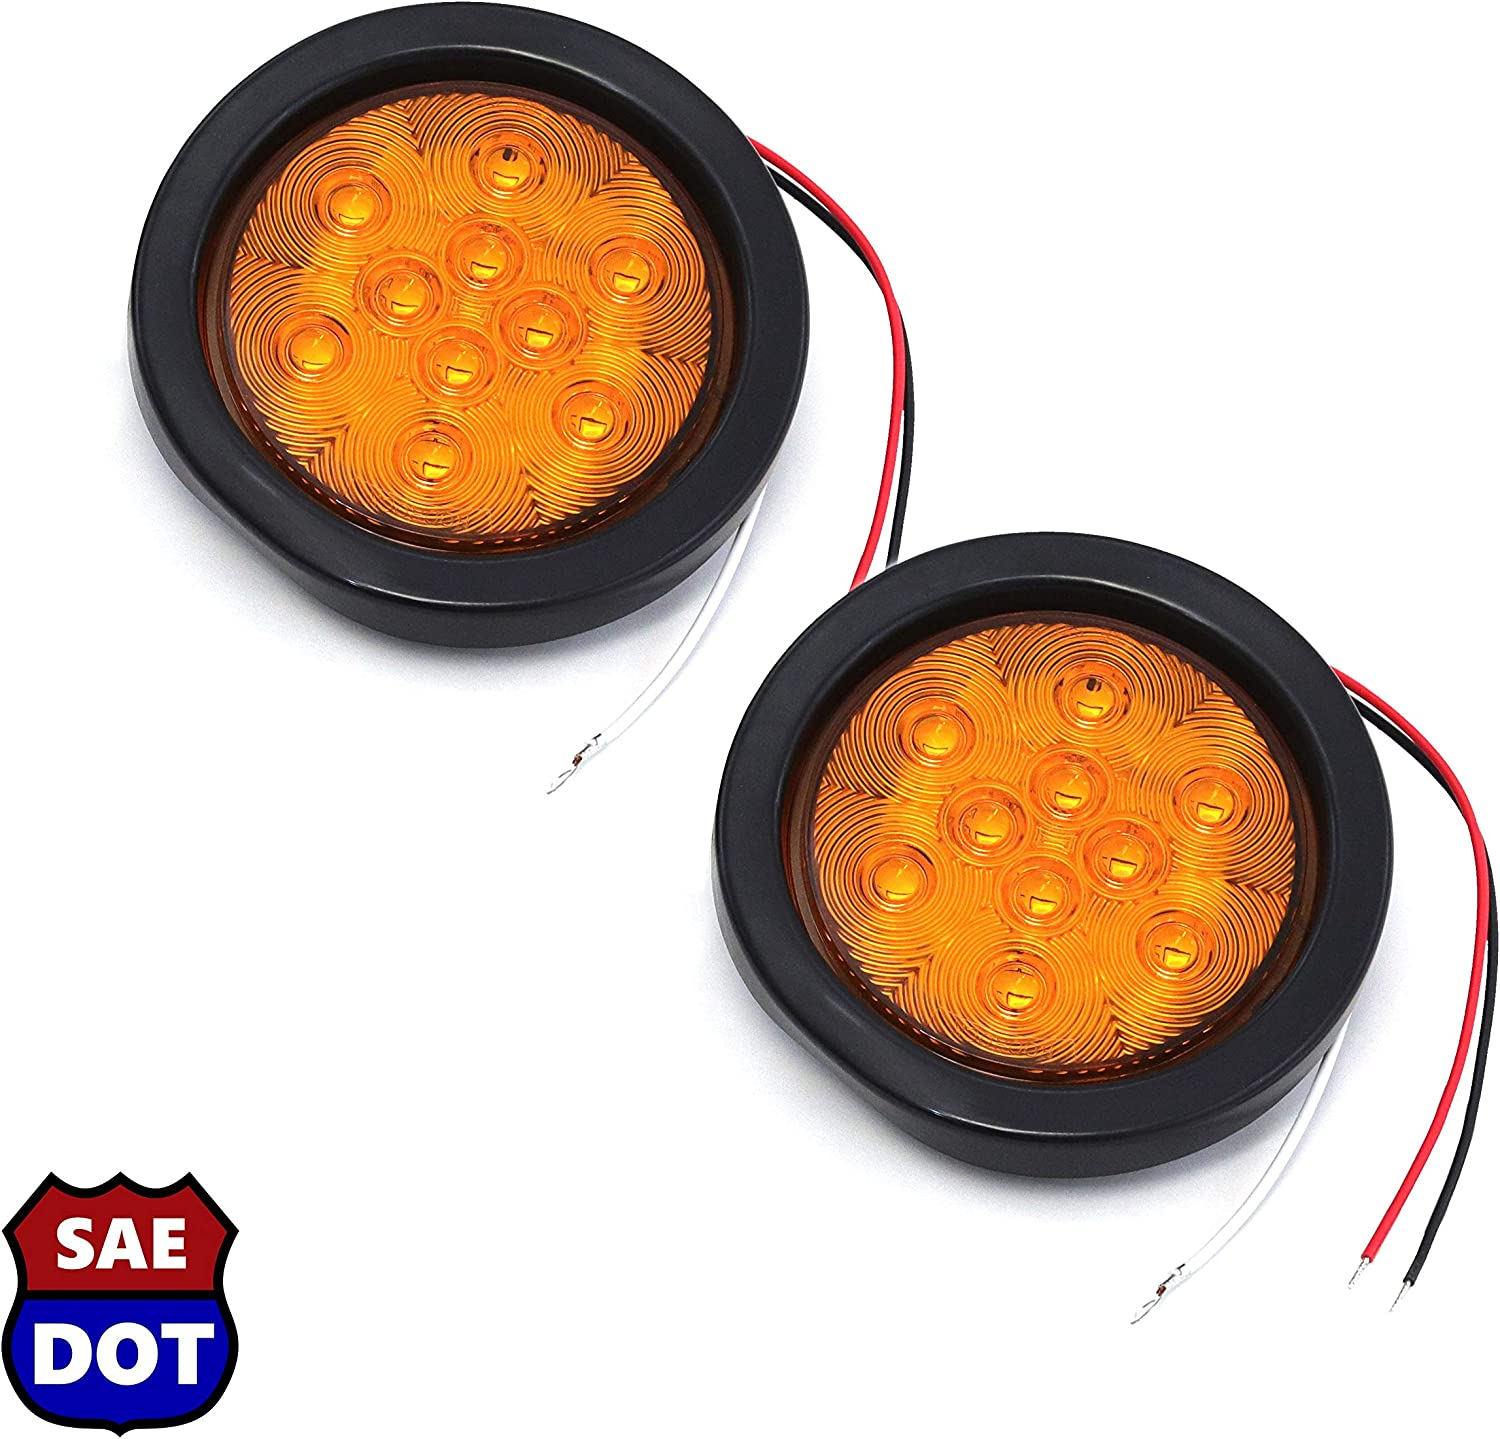 2 Amber 12 LED Stop Turn Tail Light Brake Flush Pair Truck Trailer Universal Red Hound Auto DOT Compliant 4 Inches Round